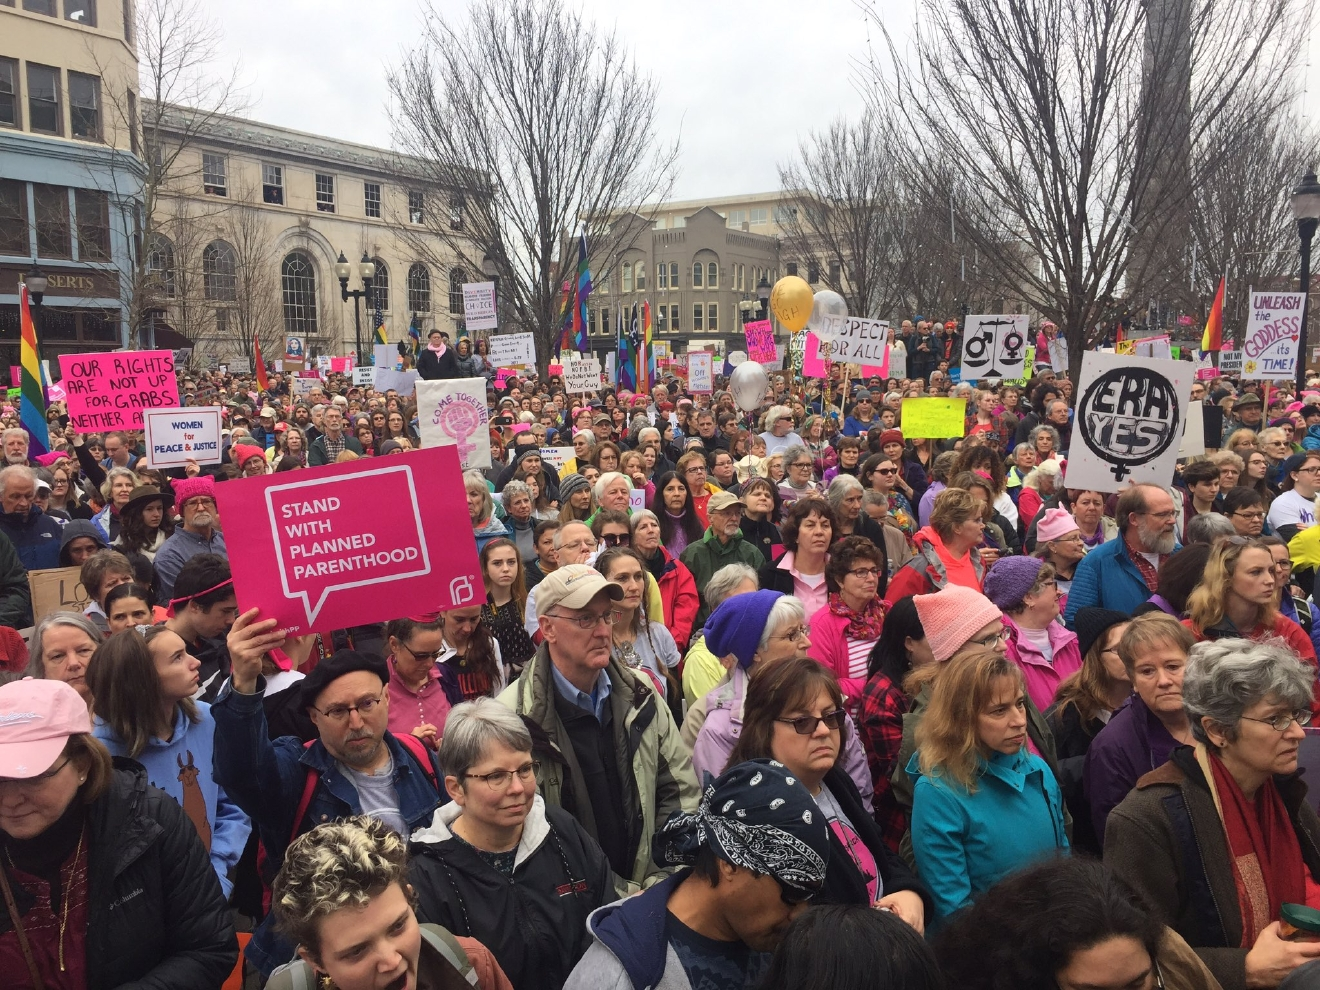 Thousands of people showed up for the rally and march on Saturday, wearing pink knit hats and carrying signs. Asheville police estimated the crowd at six to seven thousand participants. Police acknowledged that was just an estimate. Organizers said the crowd was closer to 10,000. (Photo credit: WLOS staff)